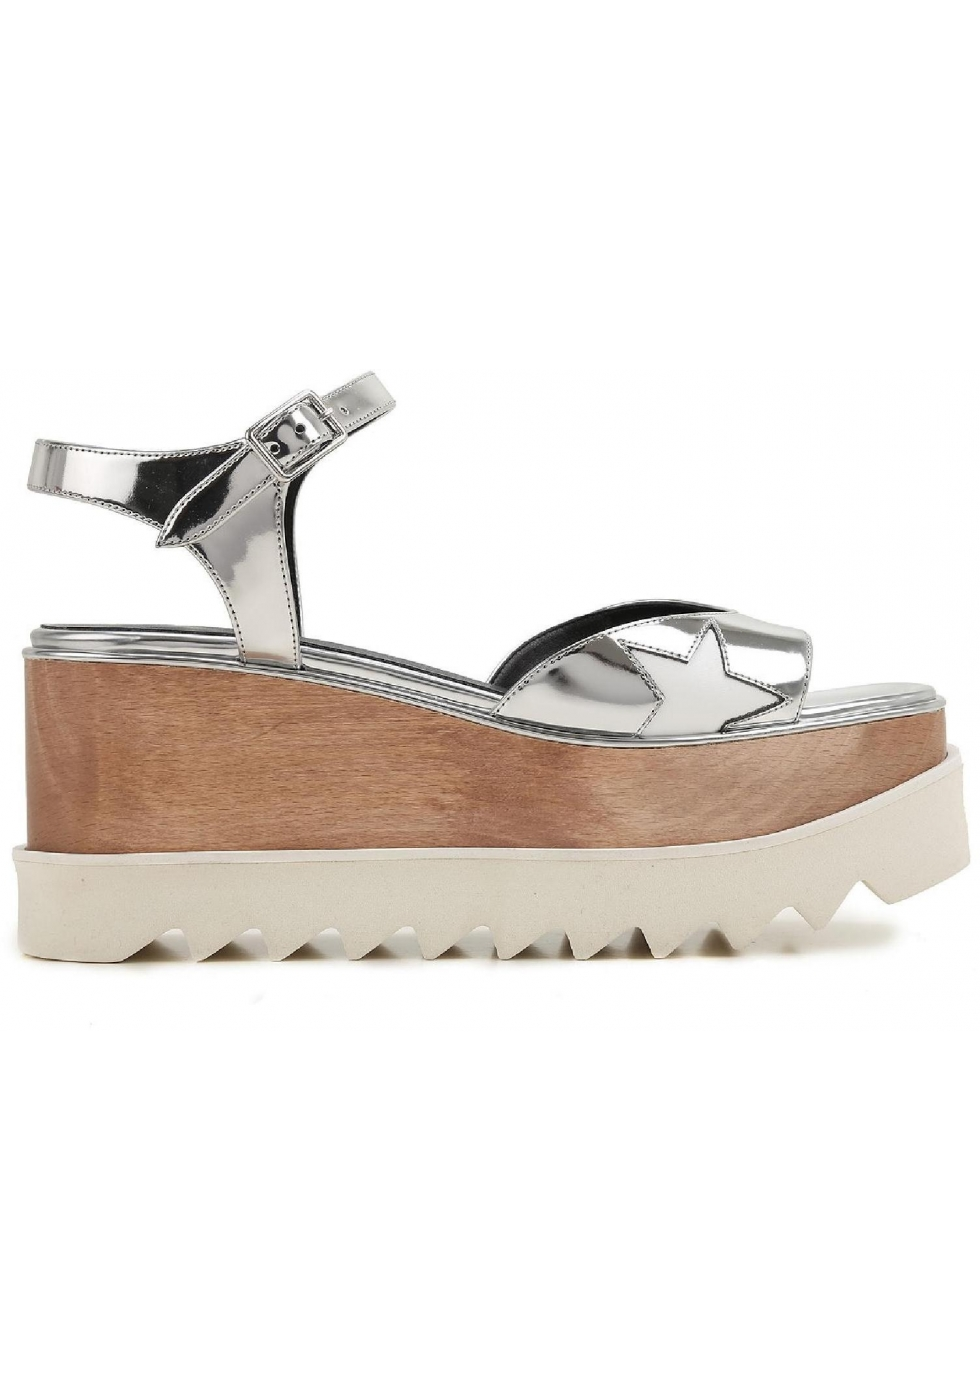 stella mccartney vegan silber wedges sandalen schuhe italian boutique. Black Bedroom Furniture Sets. Home Design Ideas